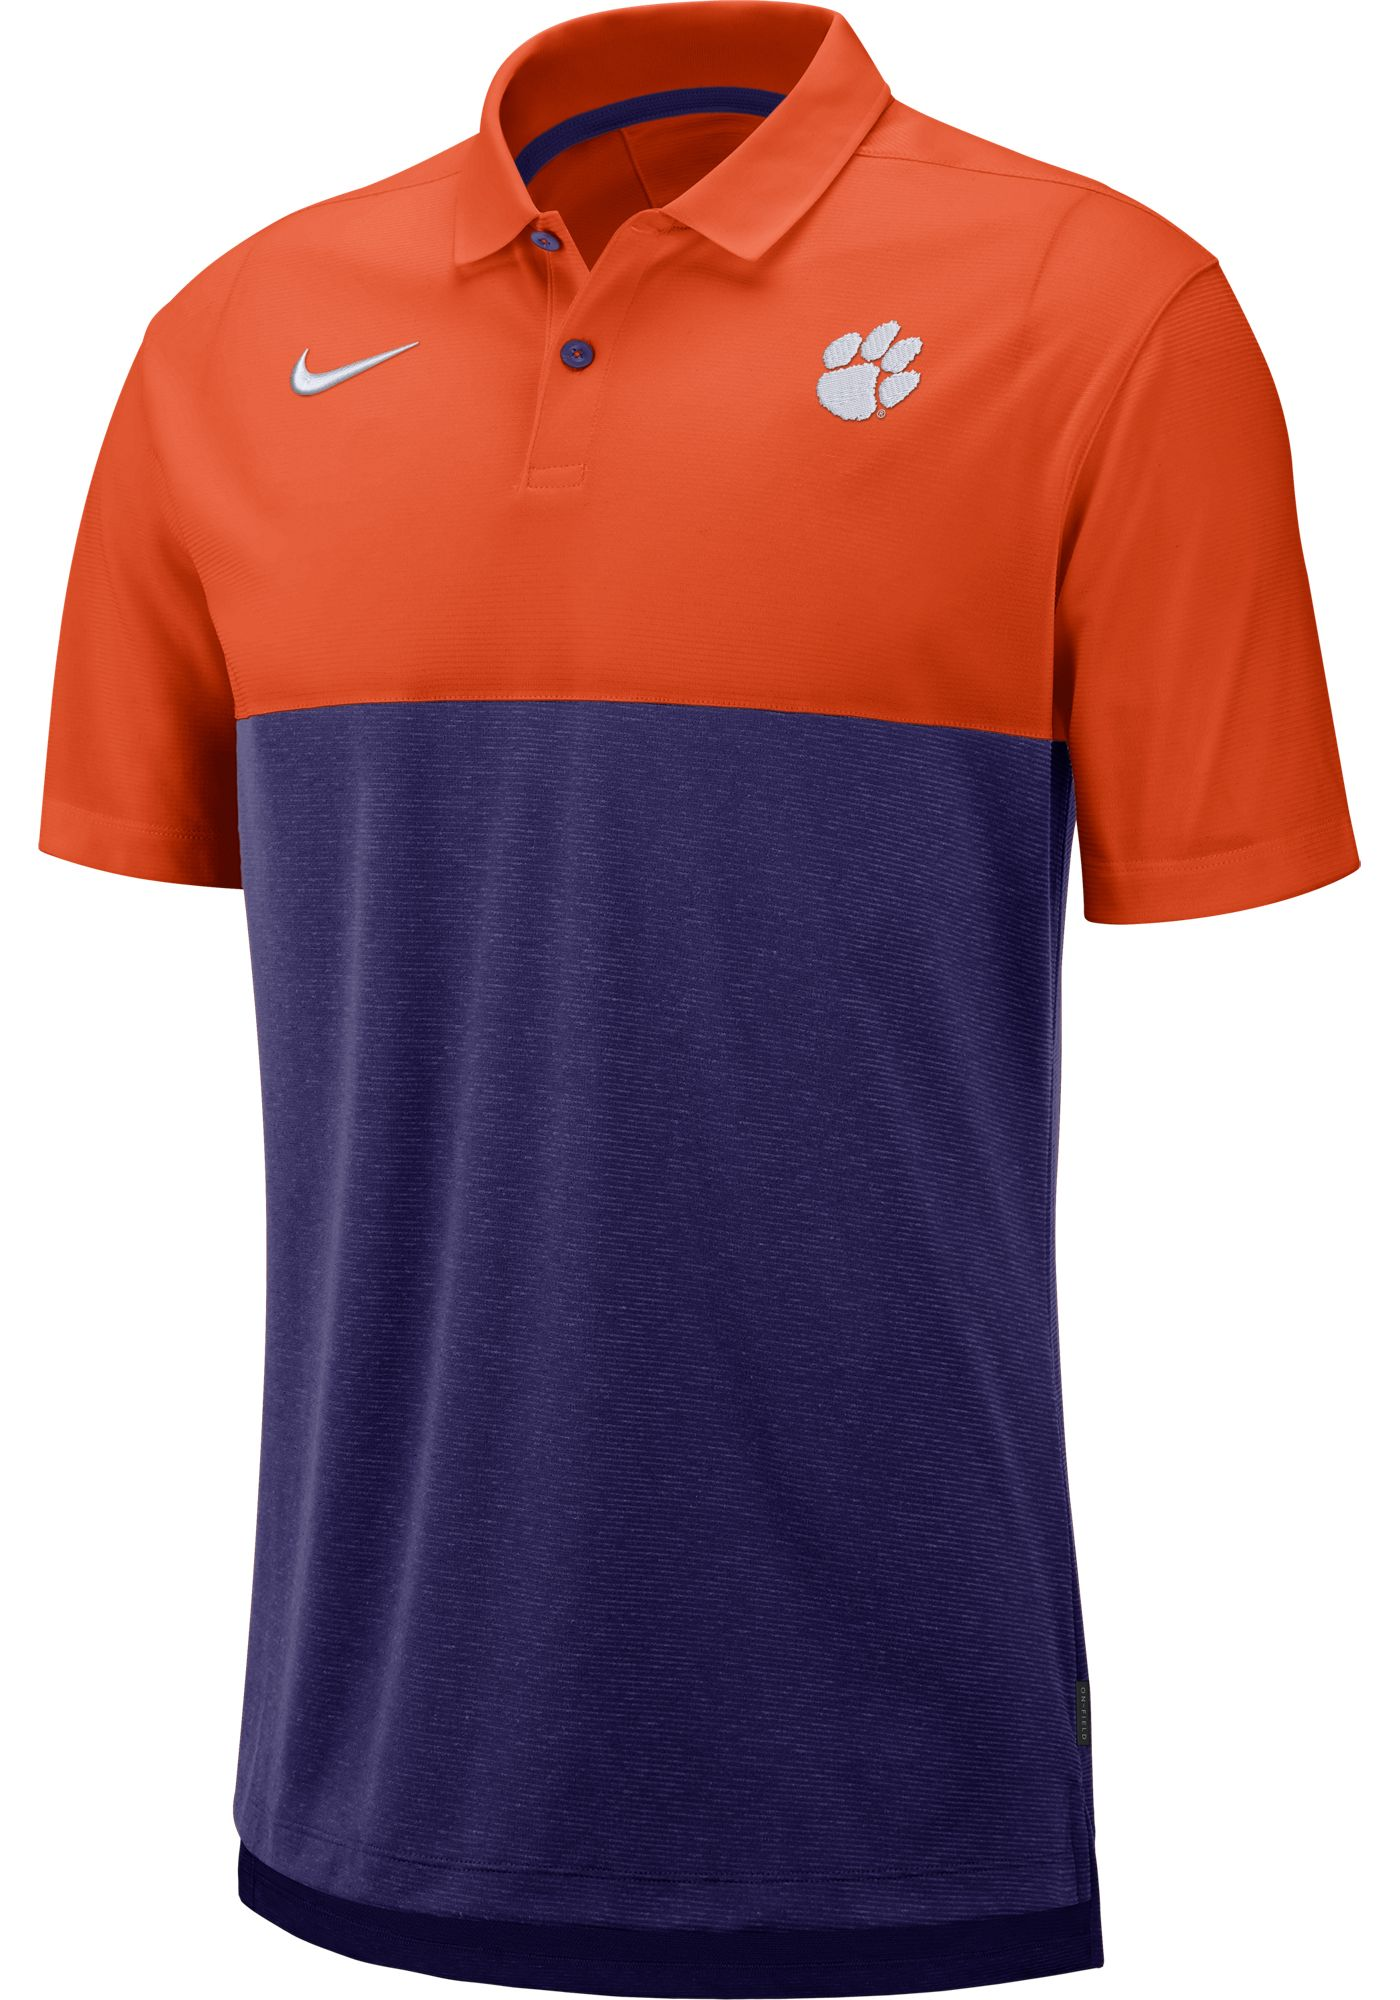 Nike Men's Clemson Tigers Orange/Regalia Dri-FIT Breathe Football Sideline Polo